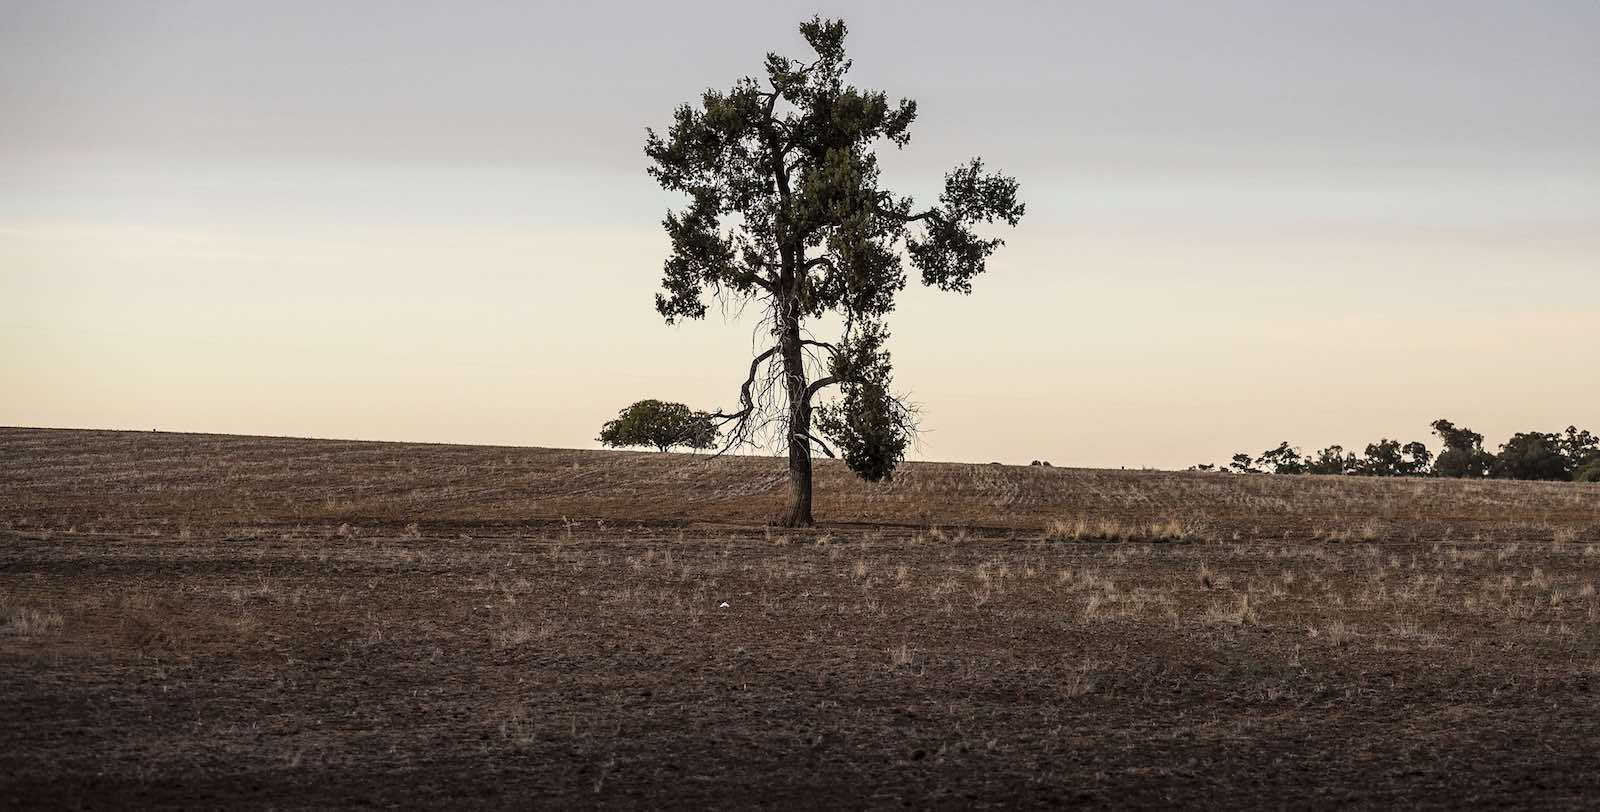 The dry lands near Coonabarabran, New South Wales, Australia, in June (Photo: Brook Mitchell/Getty)